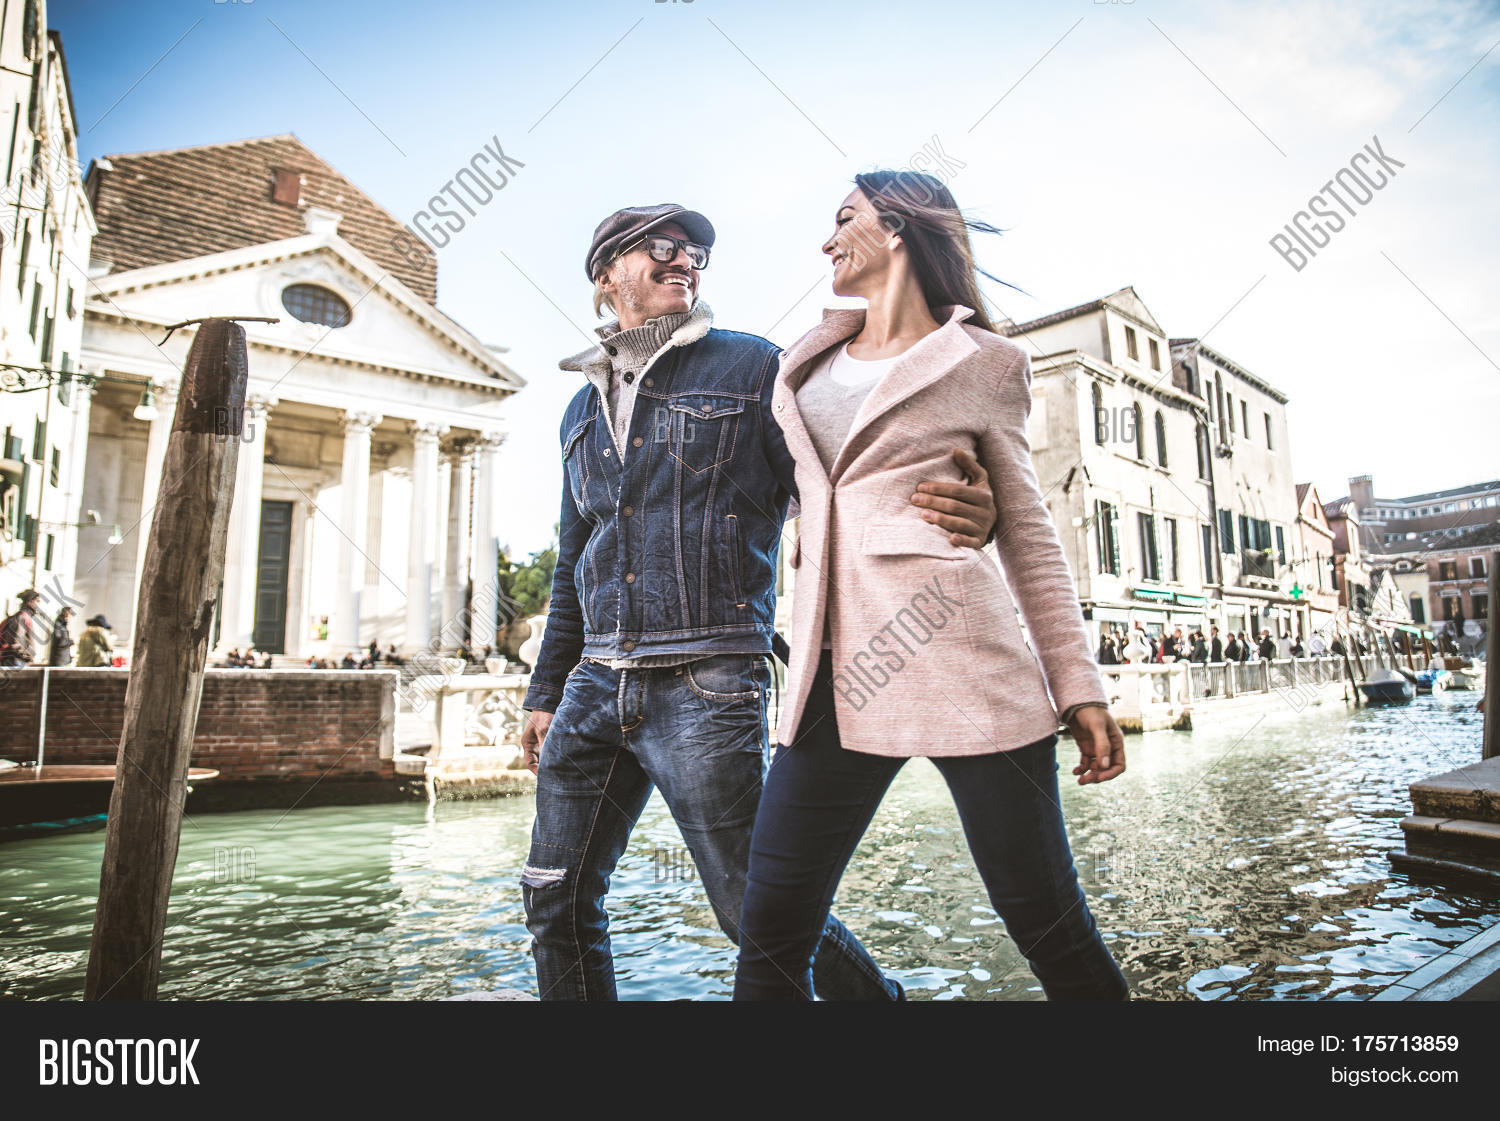 venice big and beautiful singles Plentyoffish dating forums are a place to meet singles and get dating advice or share dating experiences etc hopefully you will all have fun meeting singles.